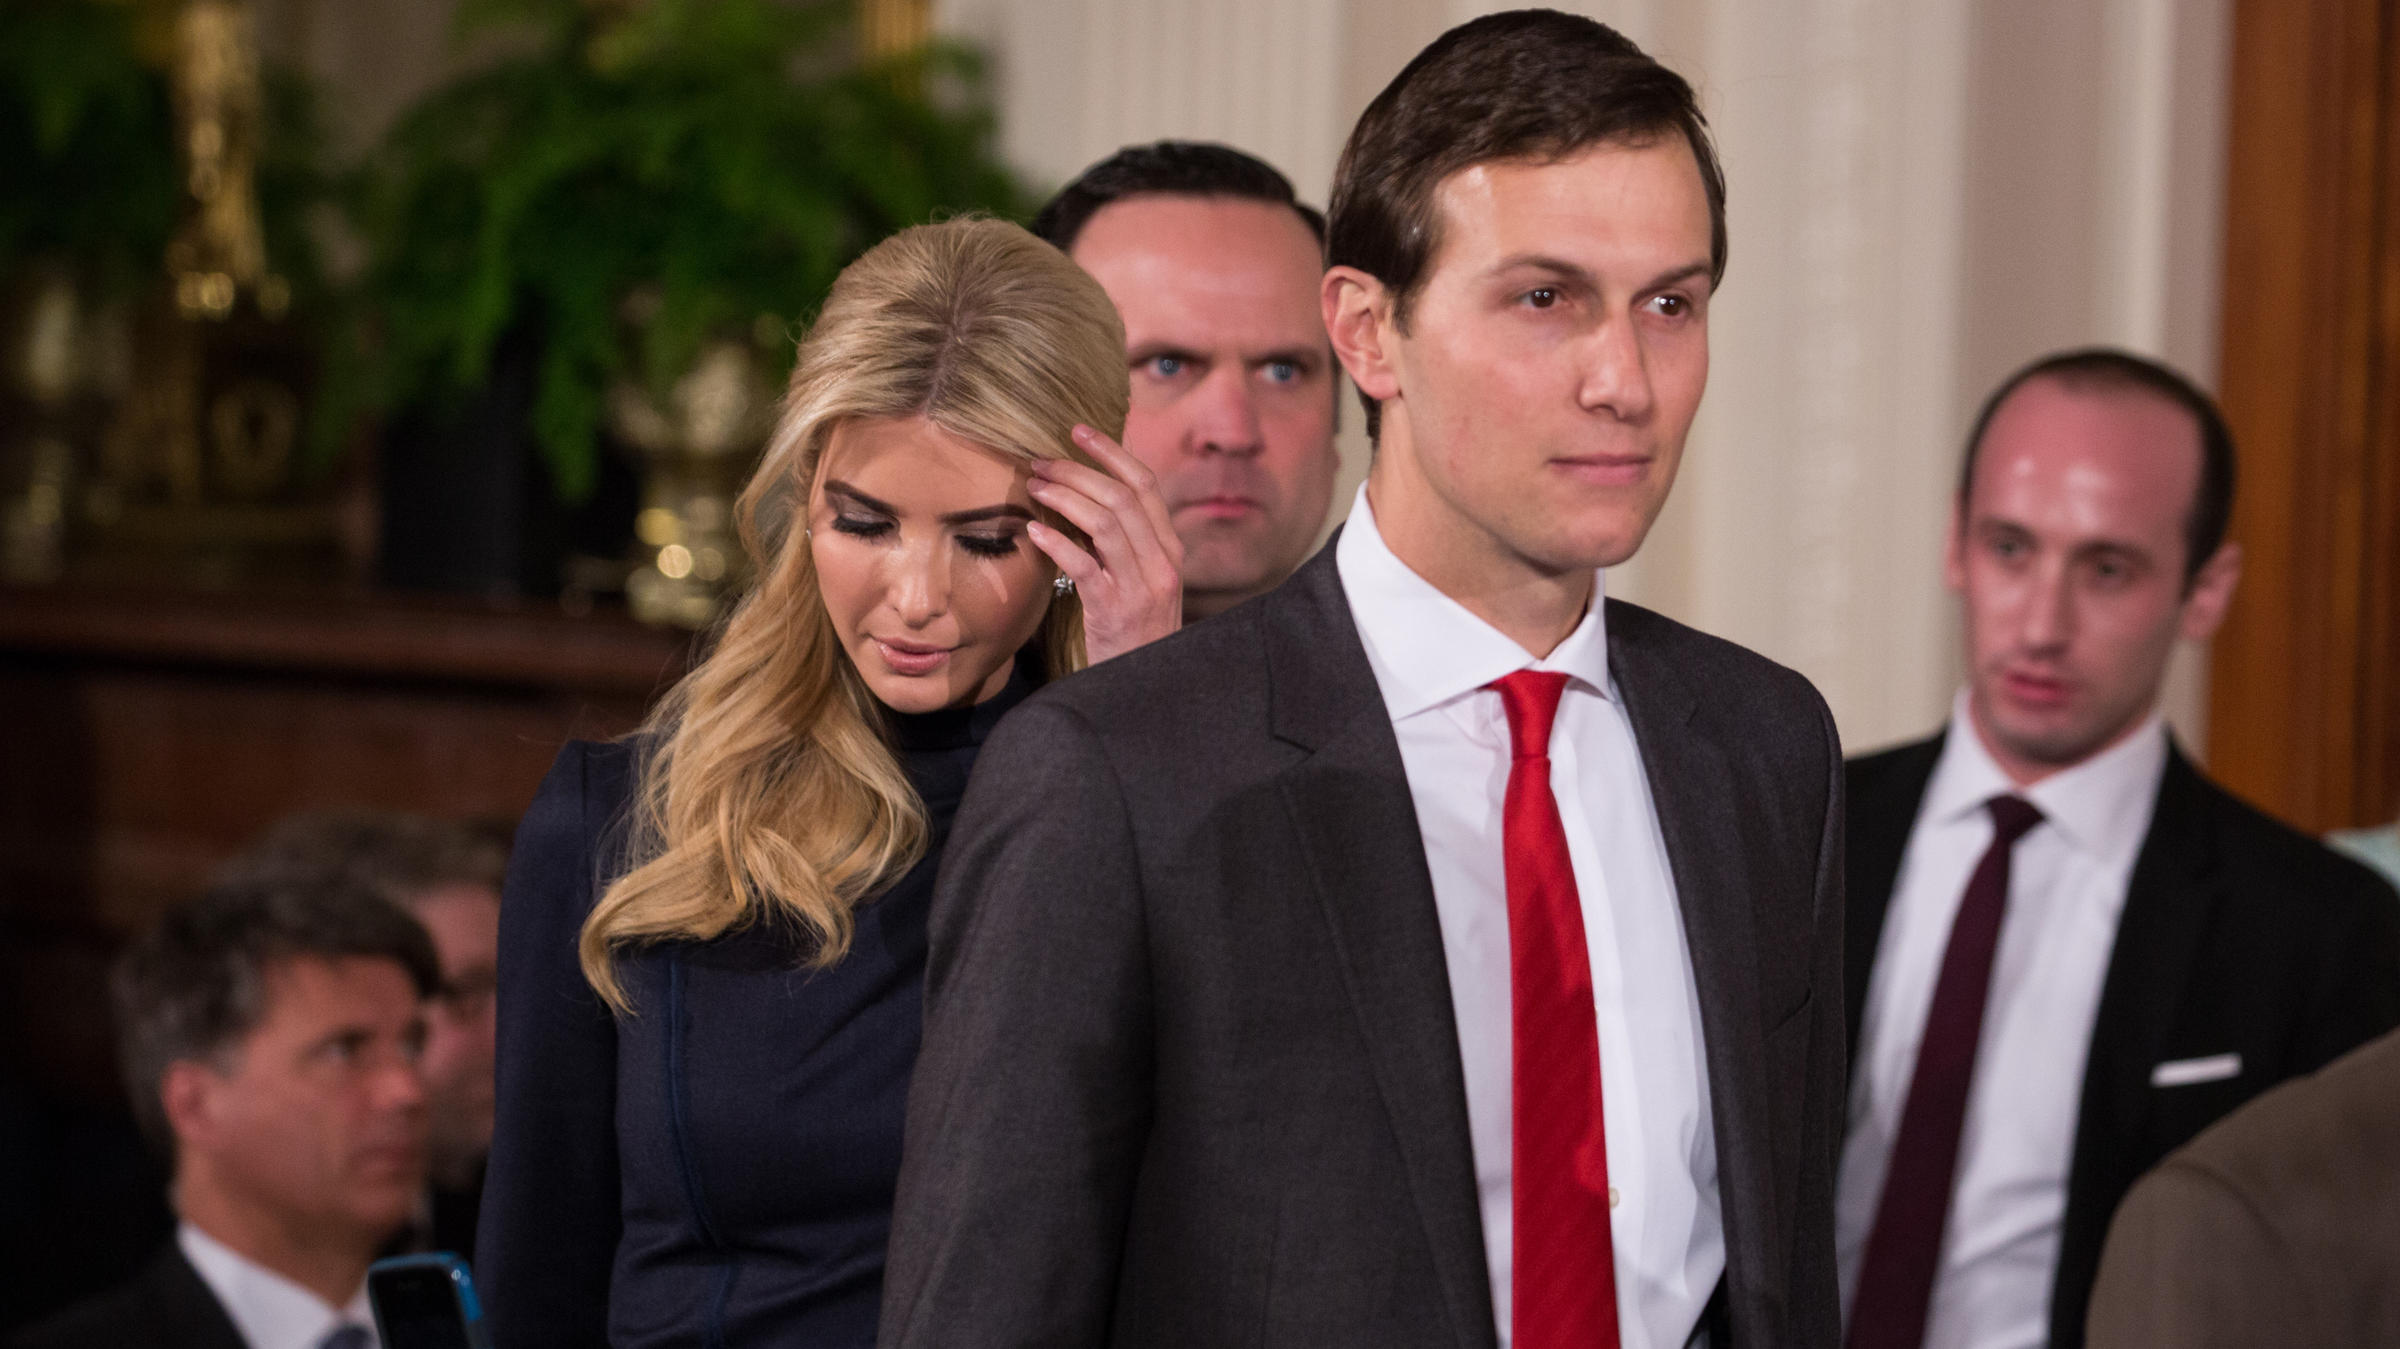 US Senate panel to question Trump son-in-law on Russians